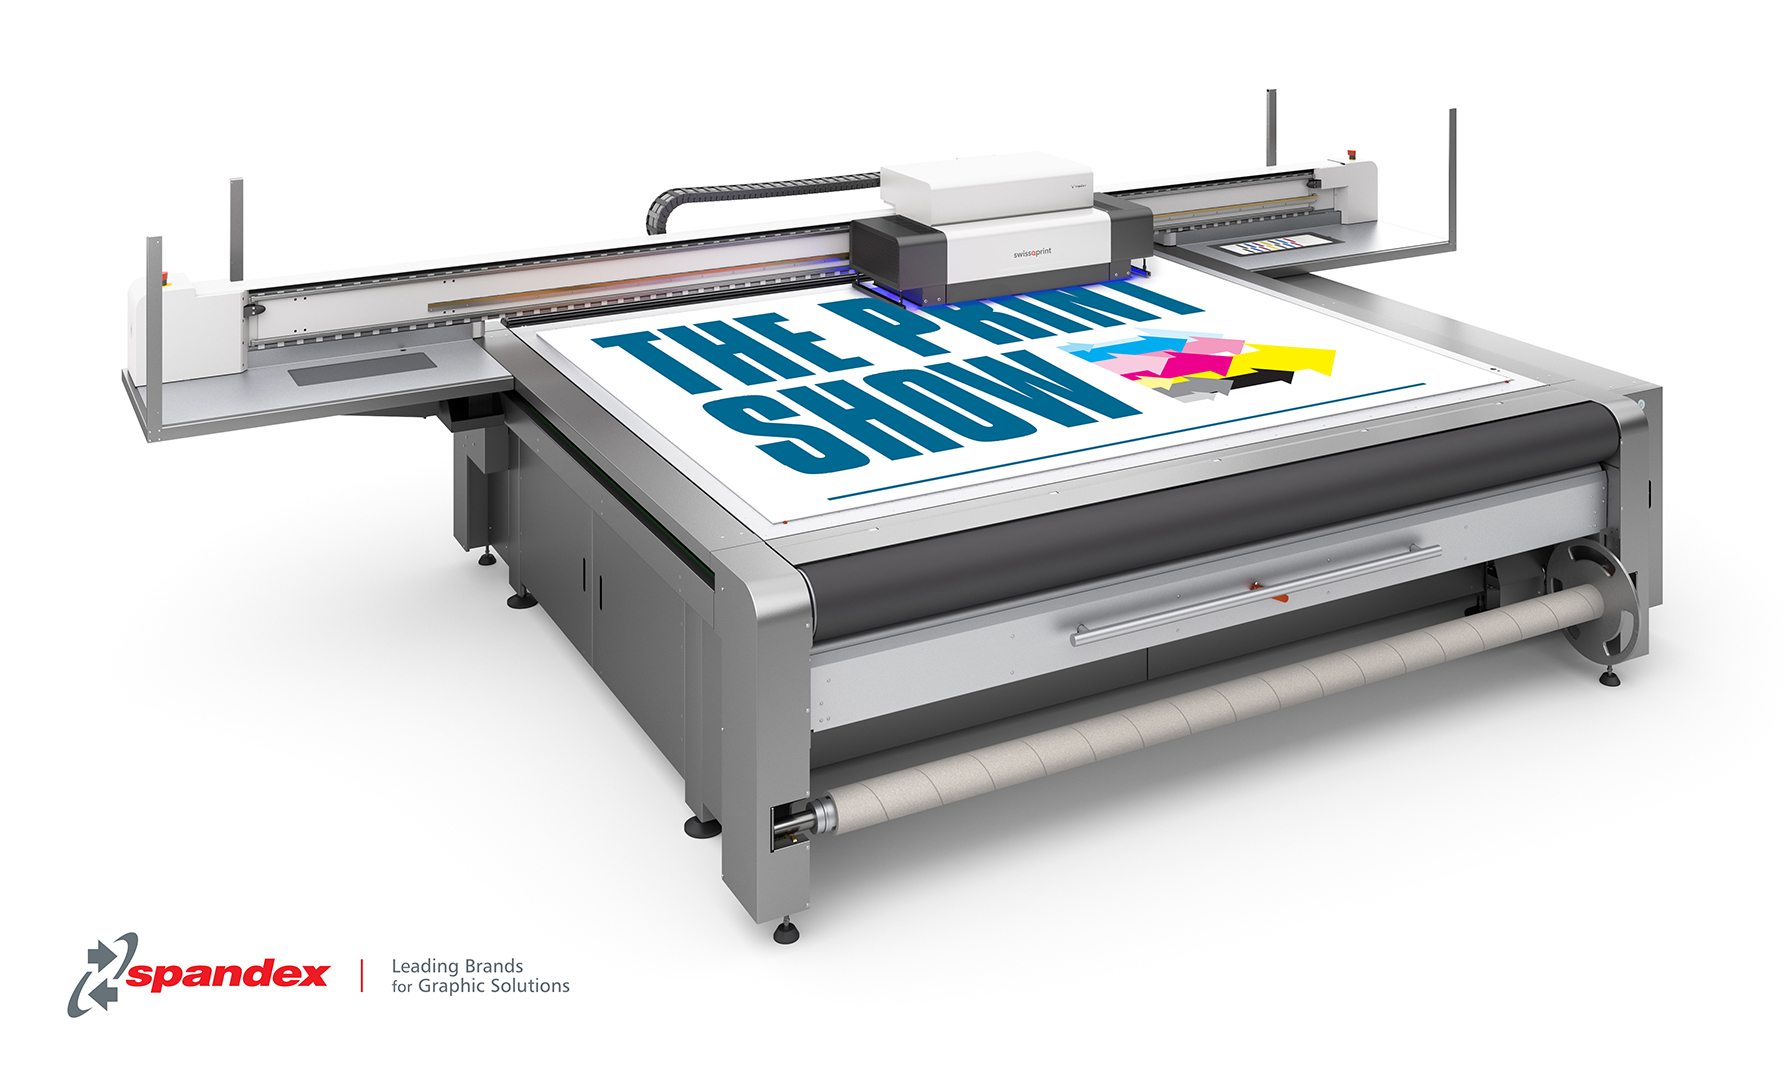 Spandex_will_demonstrate_the_swissQprint_Impala_LED_UV_flatbed_printer_at_The_Print_Show_2018.jpg